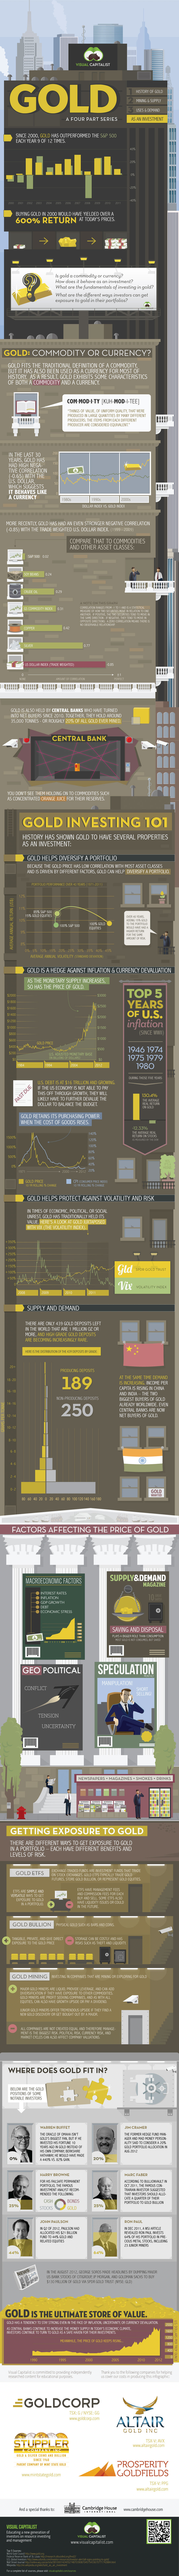 Investment in Gold-Infographic